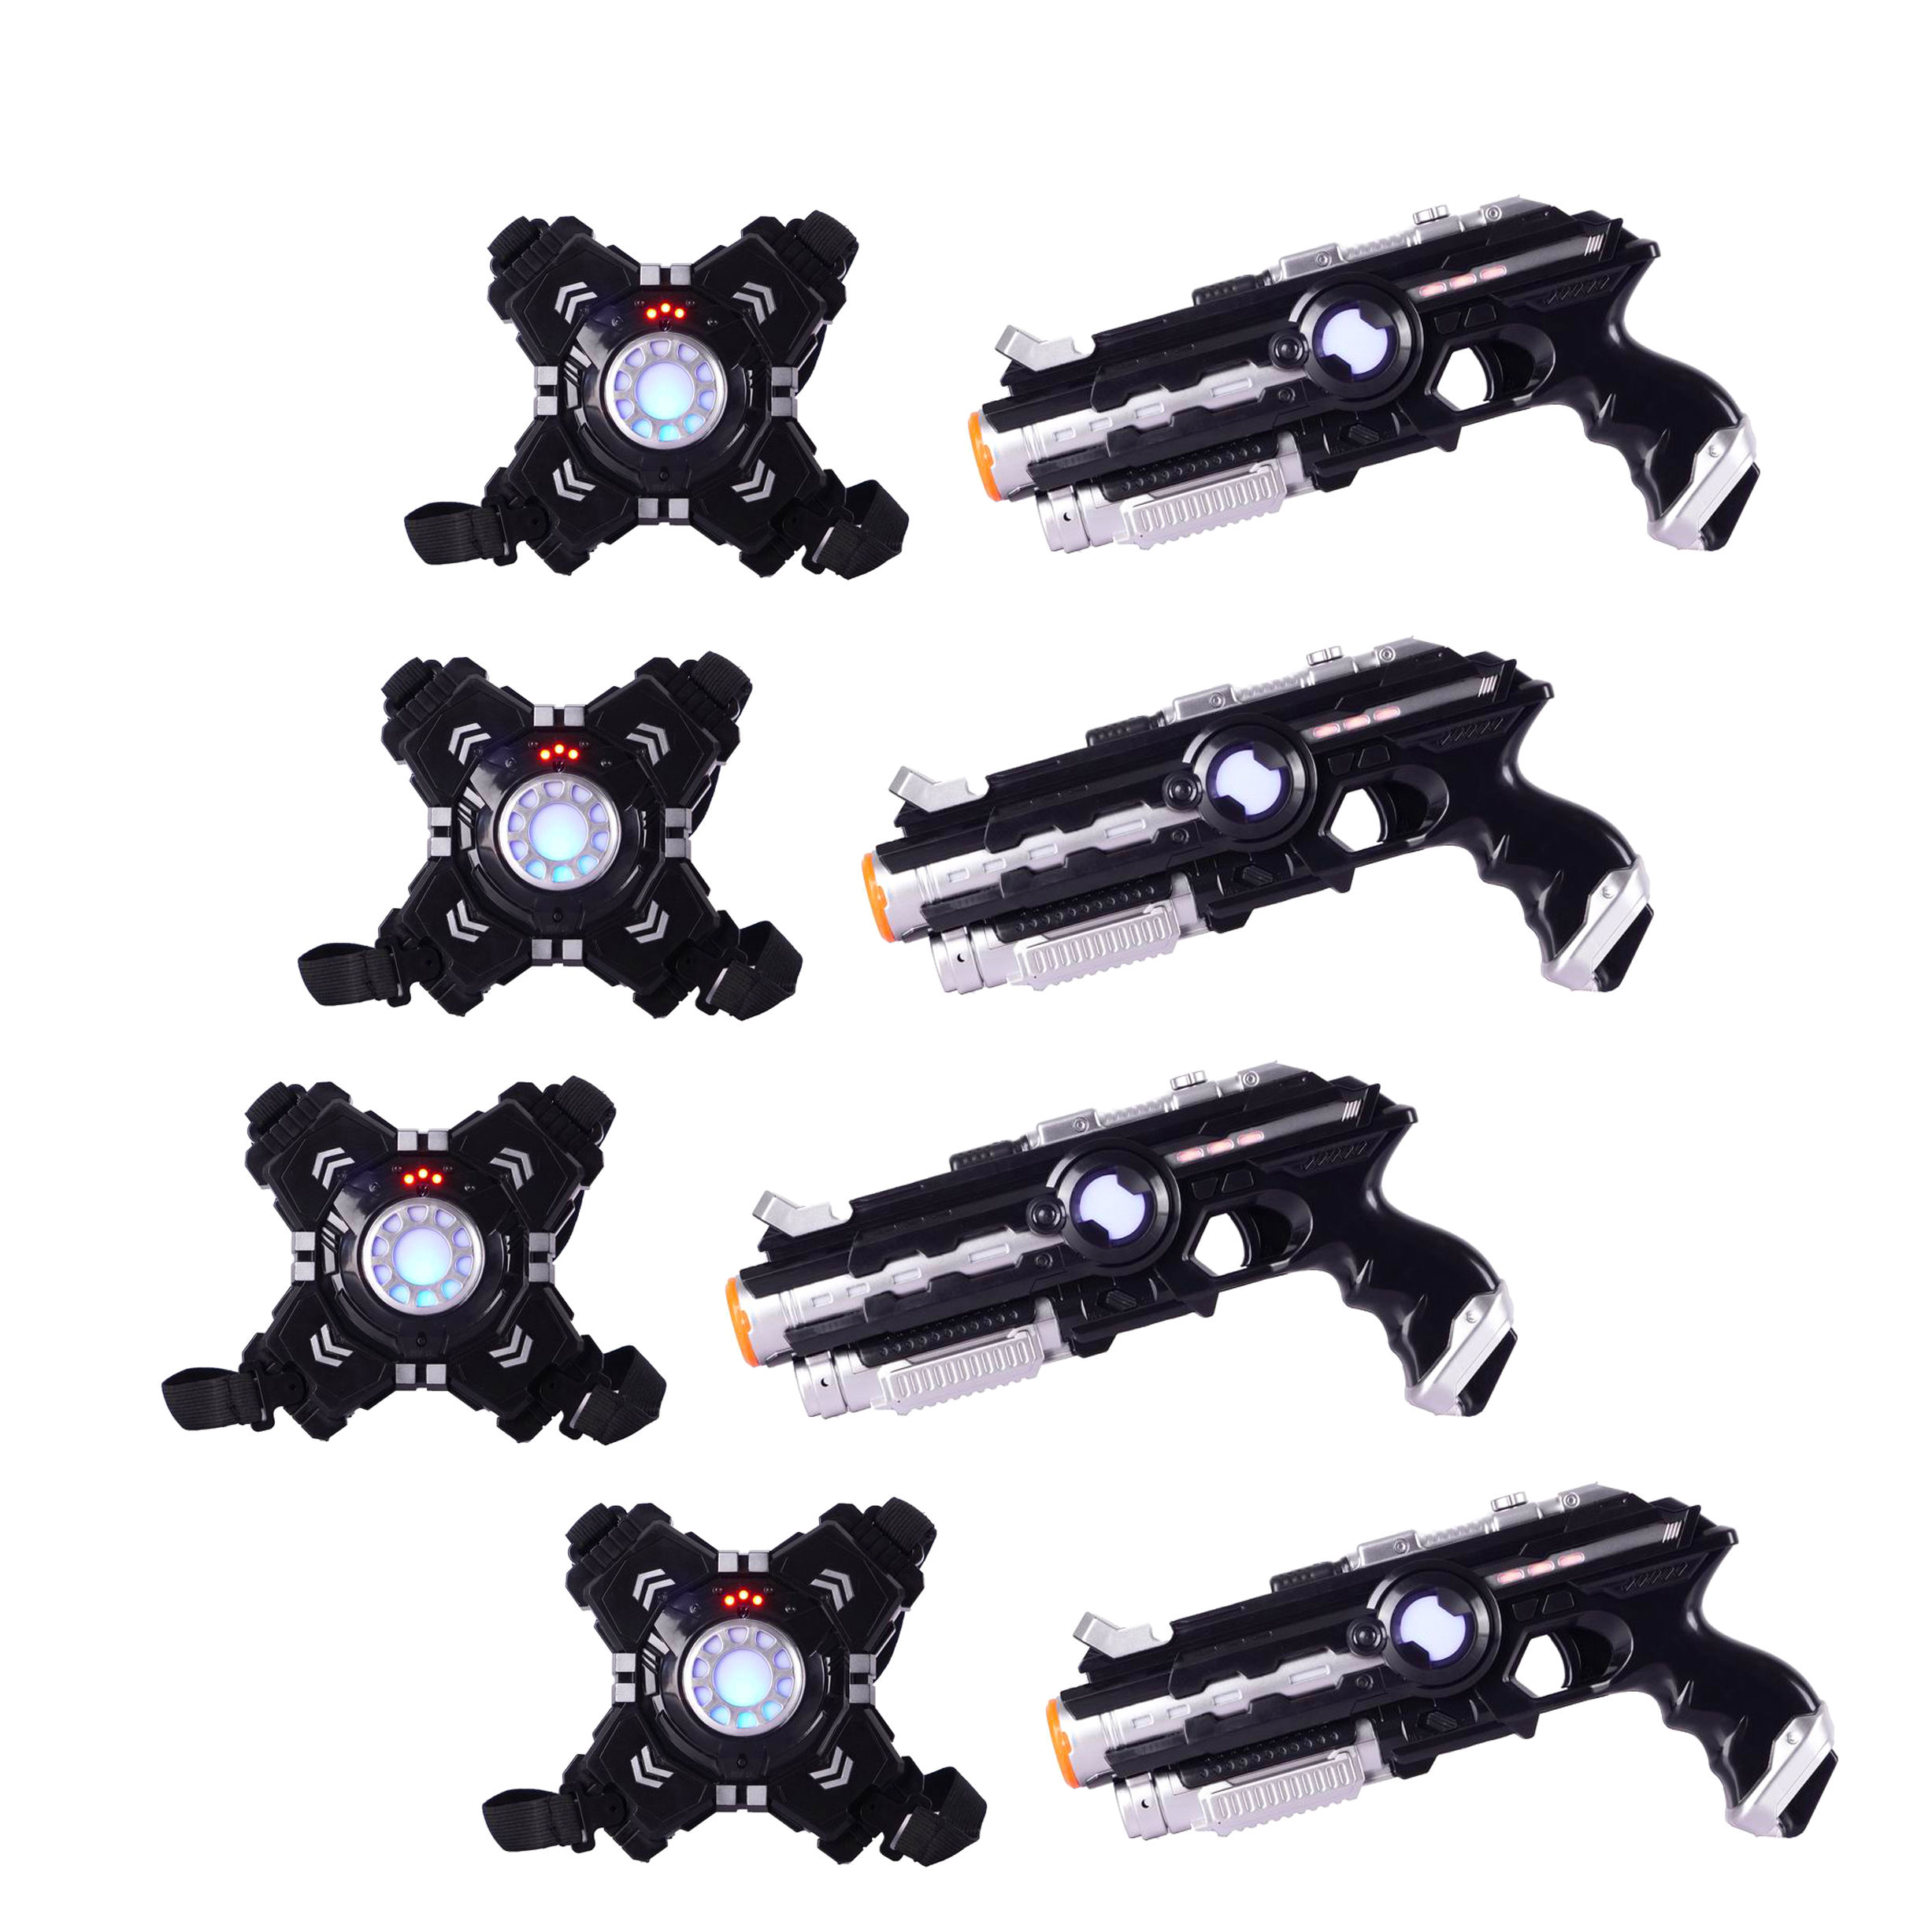 #Amazon hot selling toys 4 teams with vest induction shooting laser war game electric toys gun with laser light and sounds